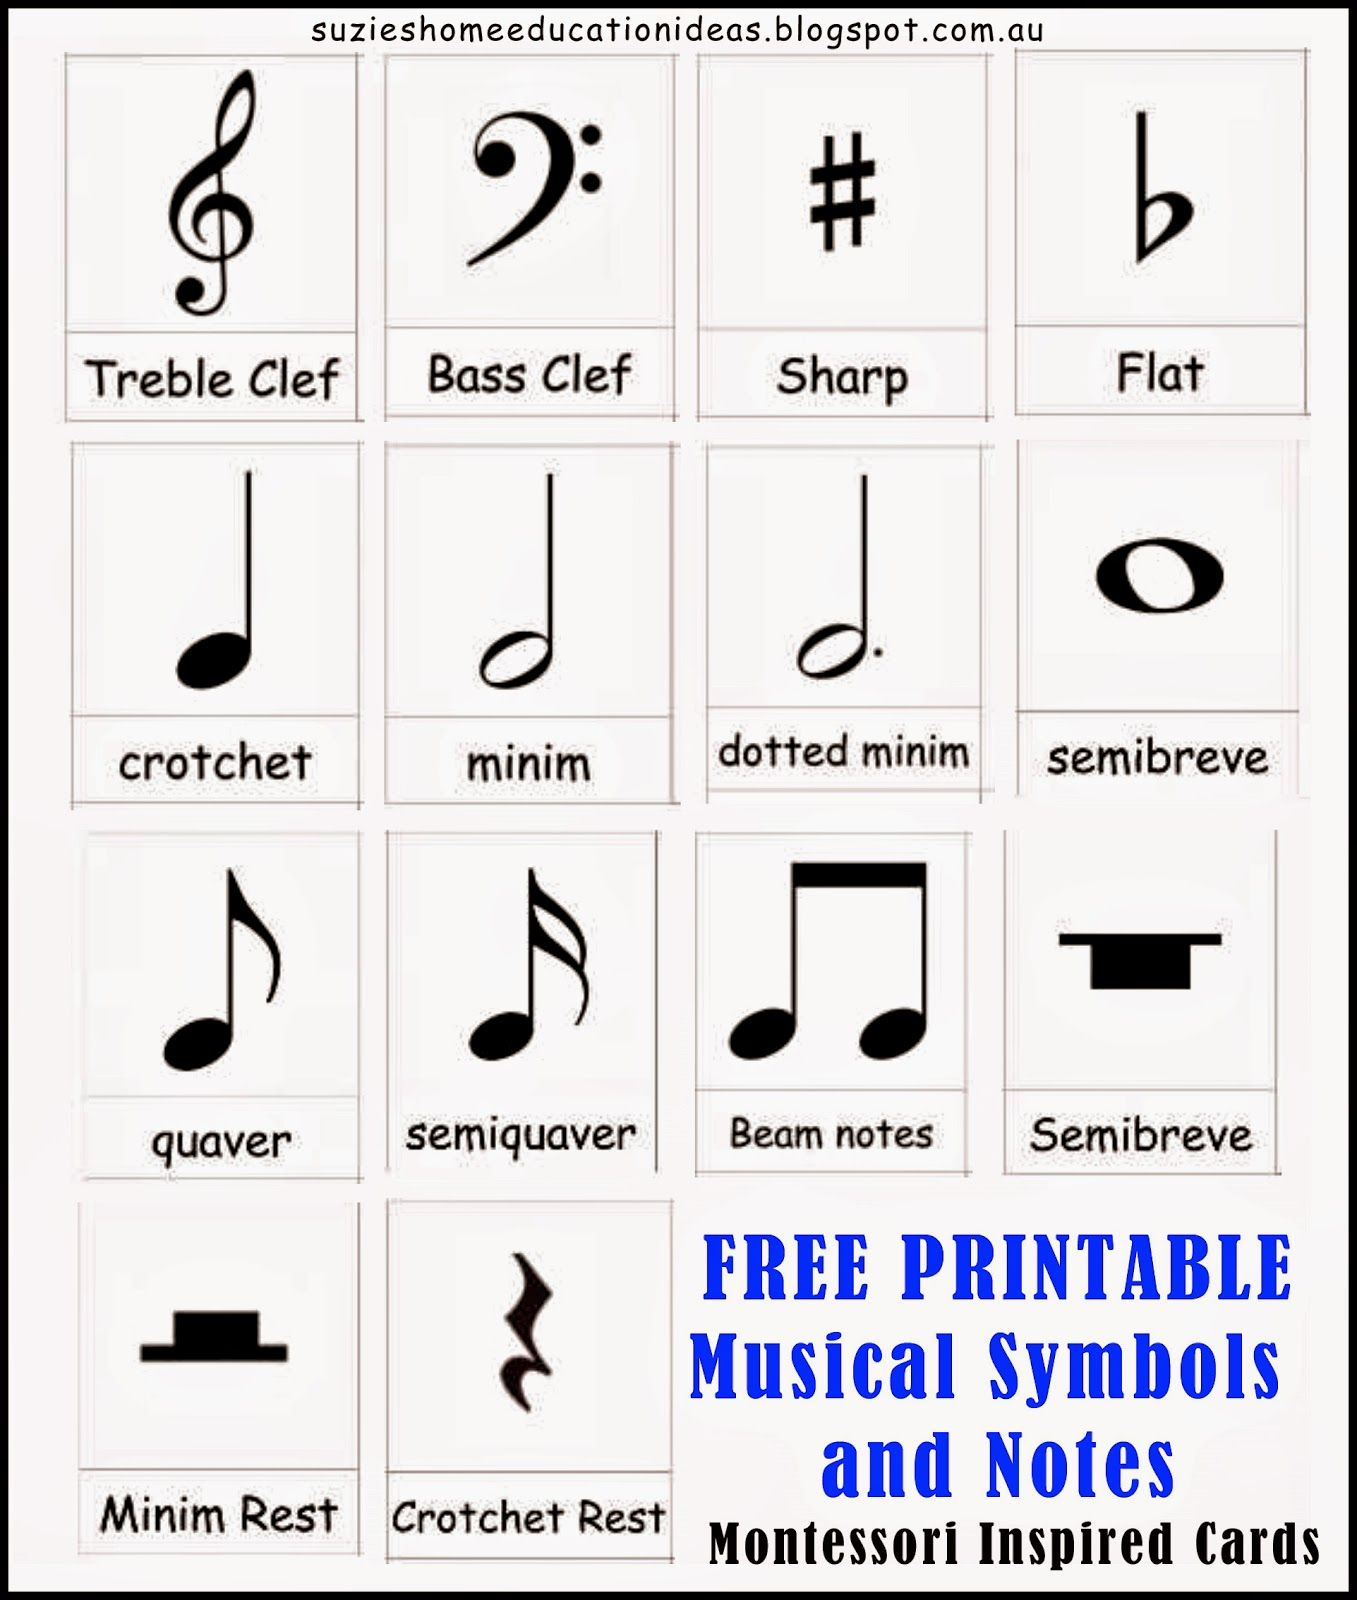 Introducing musical symbols and notes symbols free printable suzies home education ideas introducing musical symbols and notes biocorpaavc Gallery